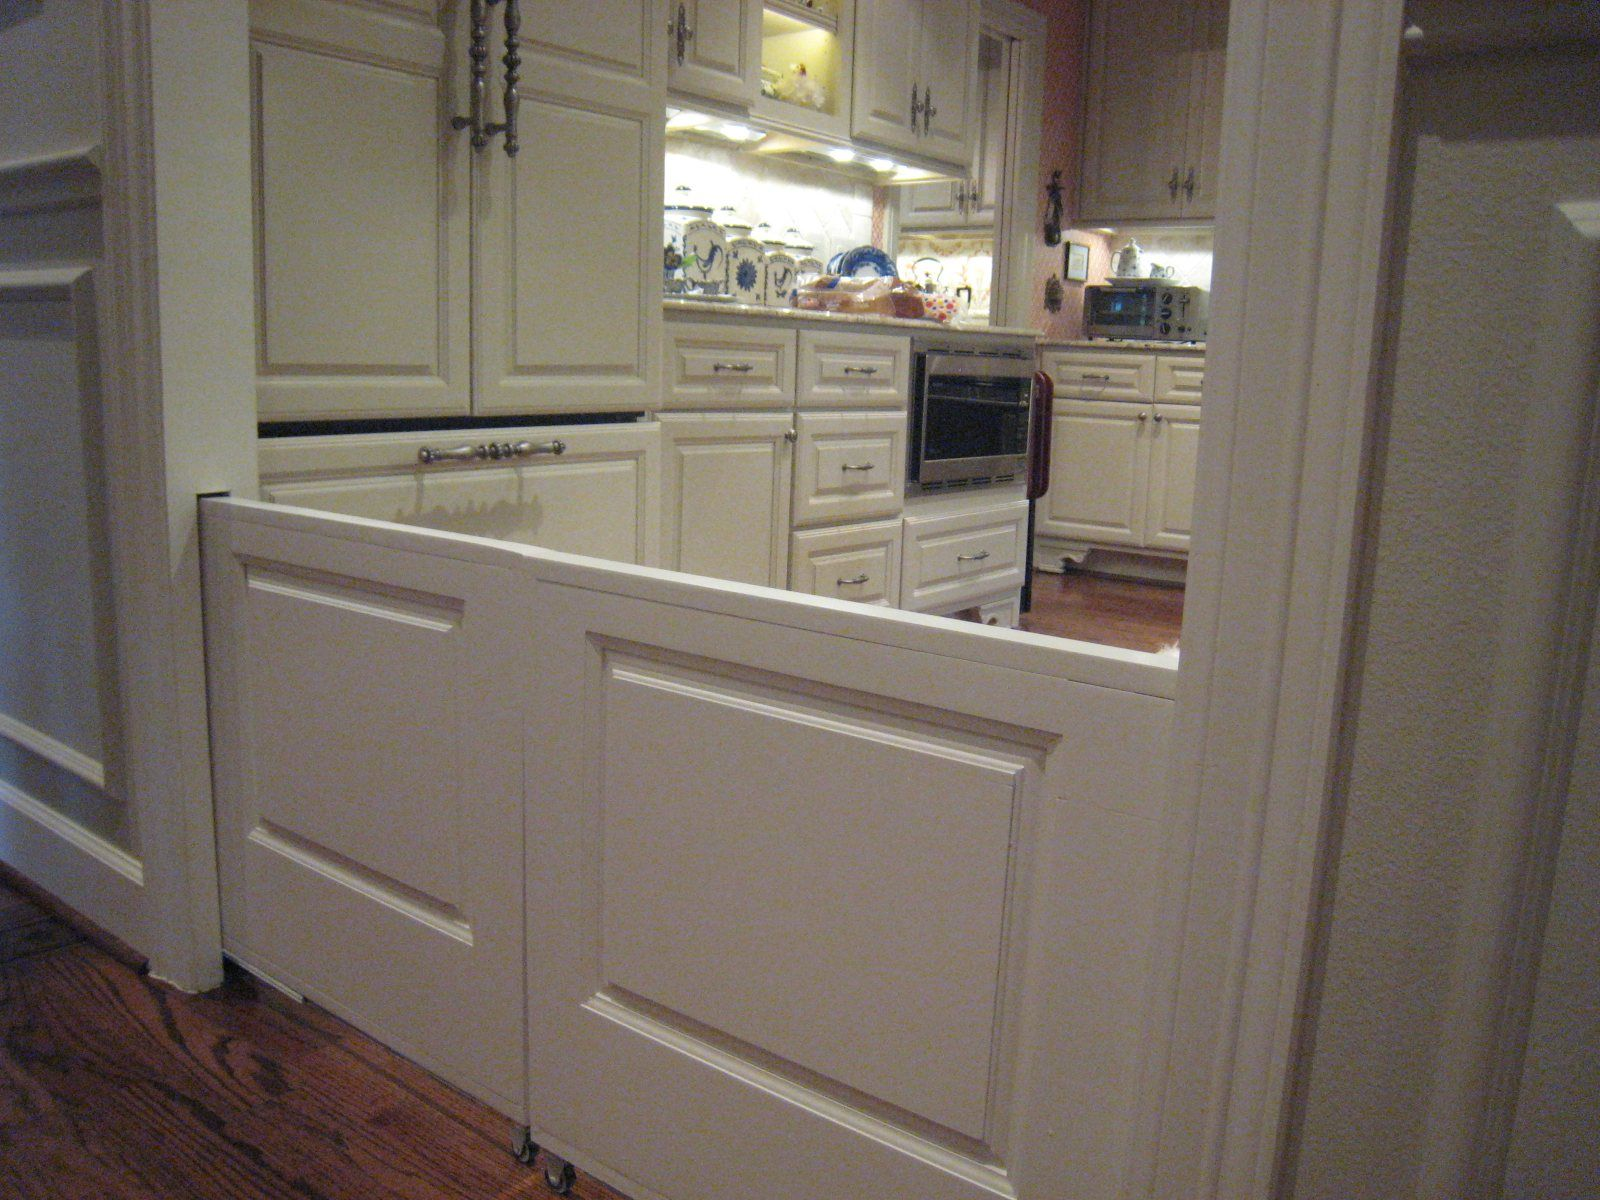 Kitchen cabinets pocket doors - If You Are Building An New Home Slide Out Dog Kid Doors This Is The Greatest Idea Ever No More Awful Looking Baby Gates Pocket Door Baby Gates If Only